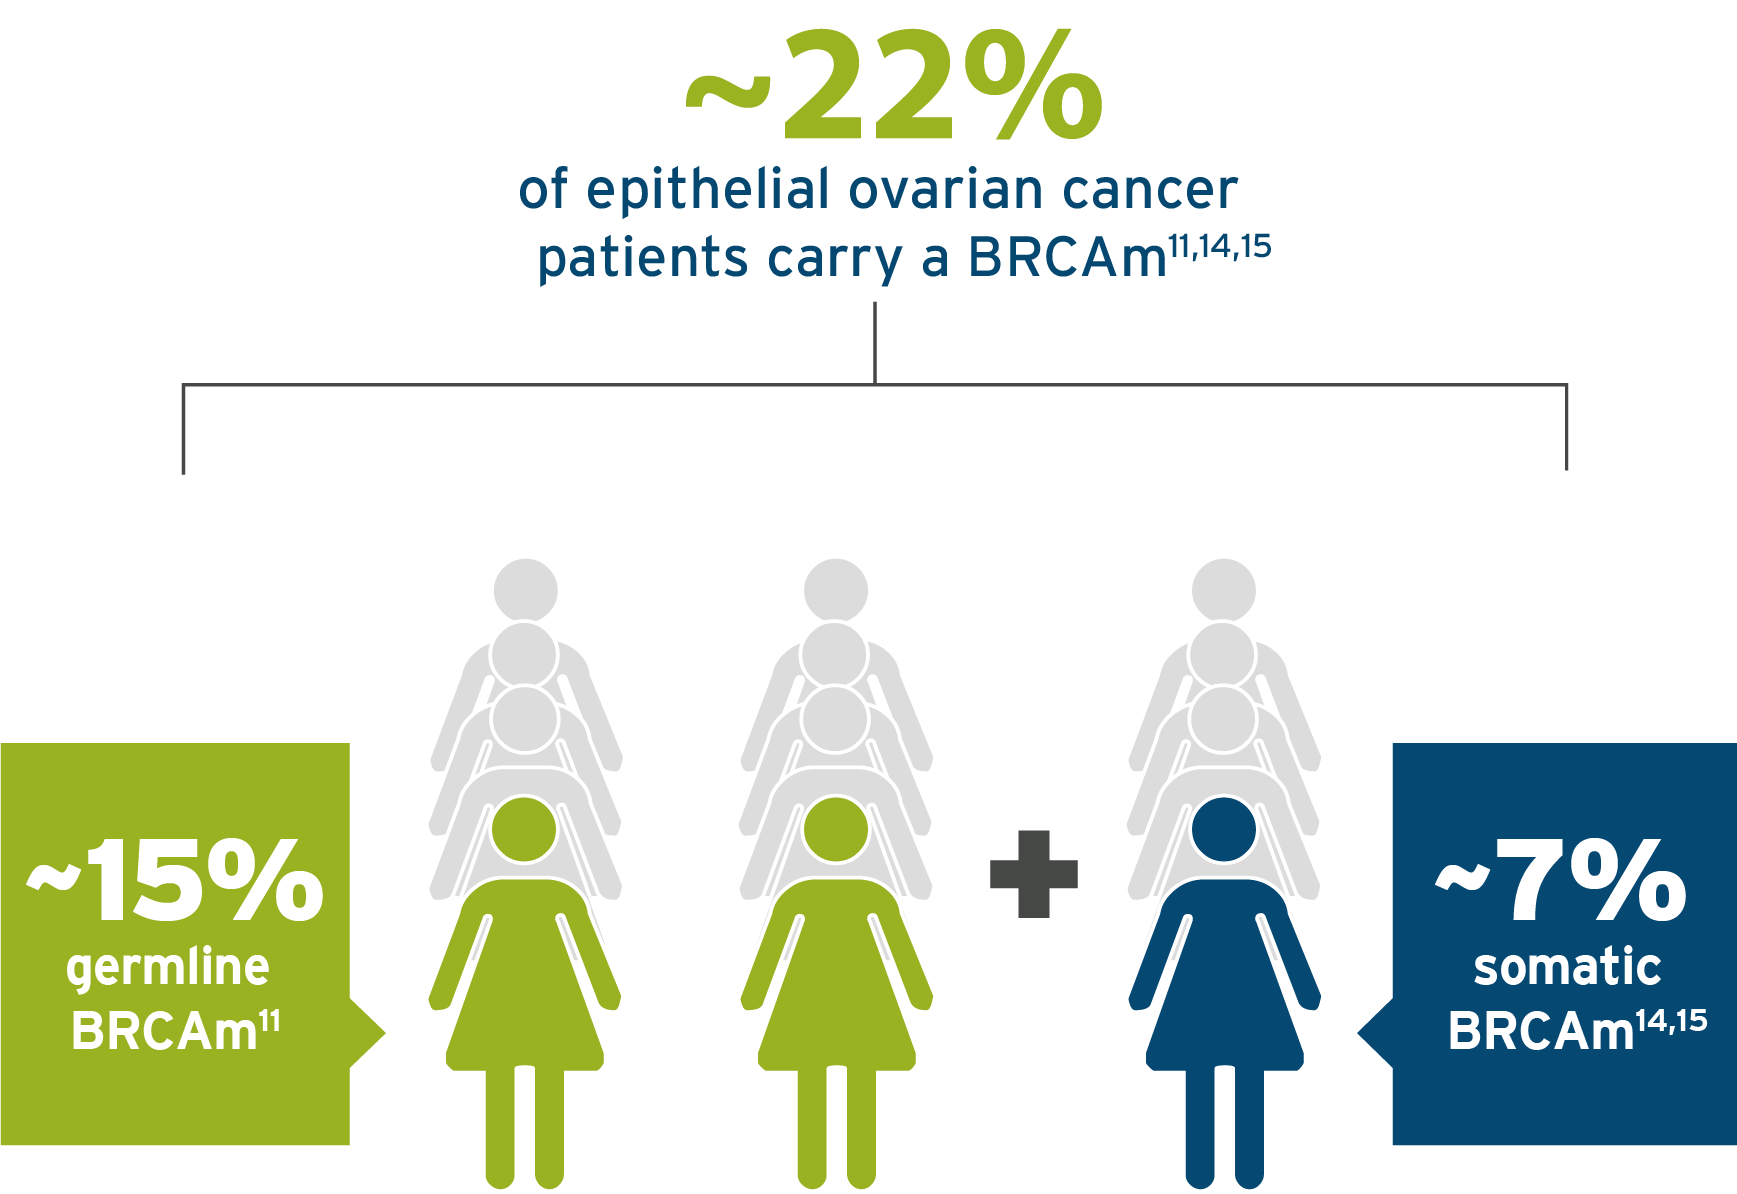 22% of epithelial ovarian cancer patients carry a BRCAm  image